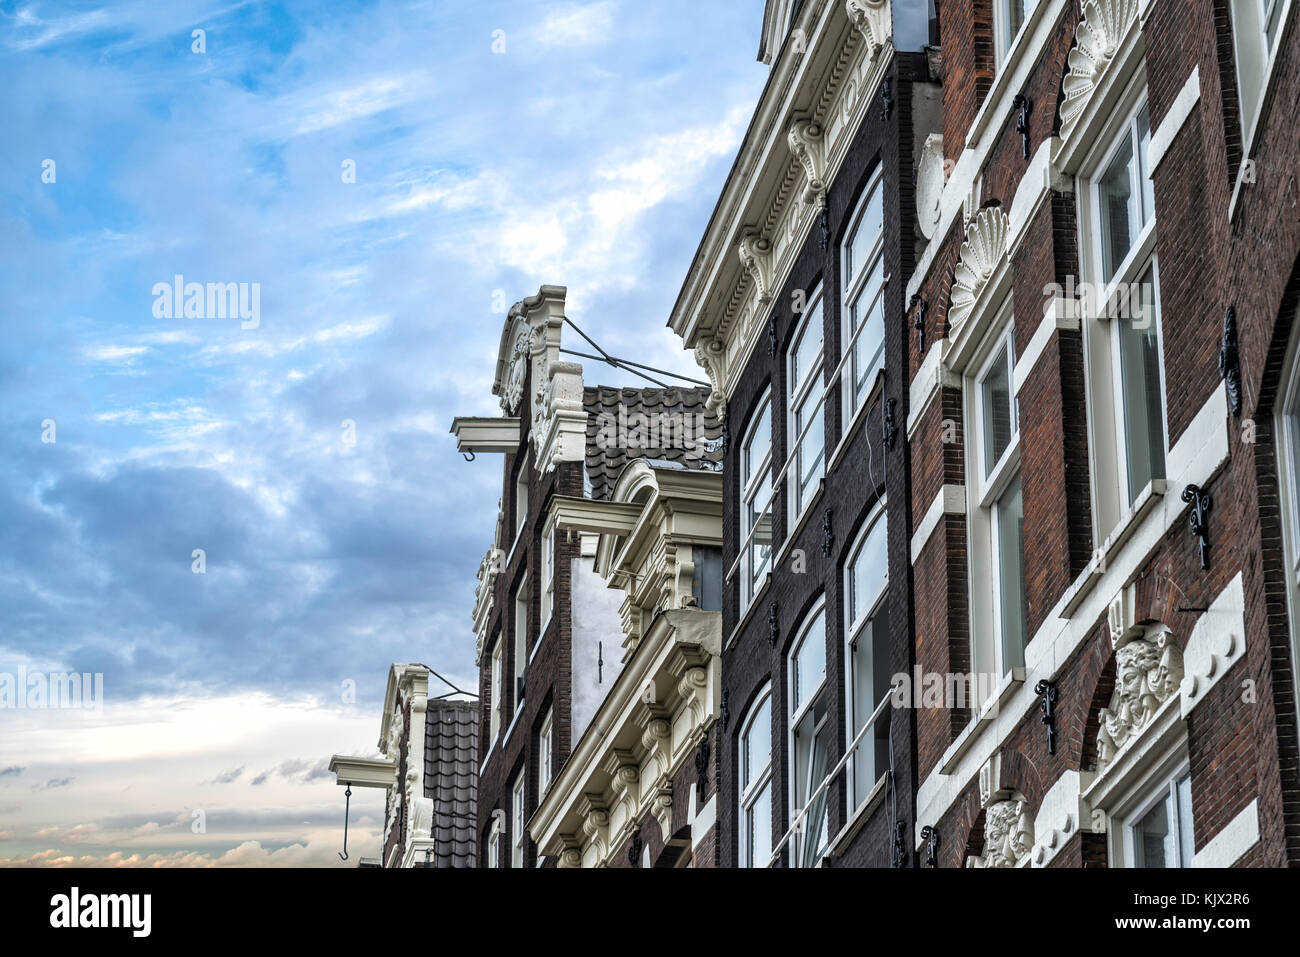 typical Amsterdam house with a hook on a beam under the roof for lifting furniture during a move. - Stock Image